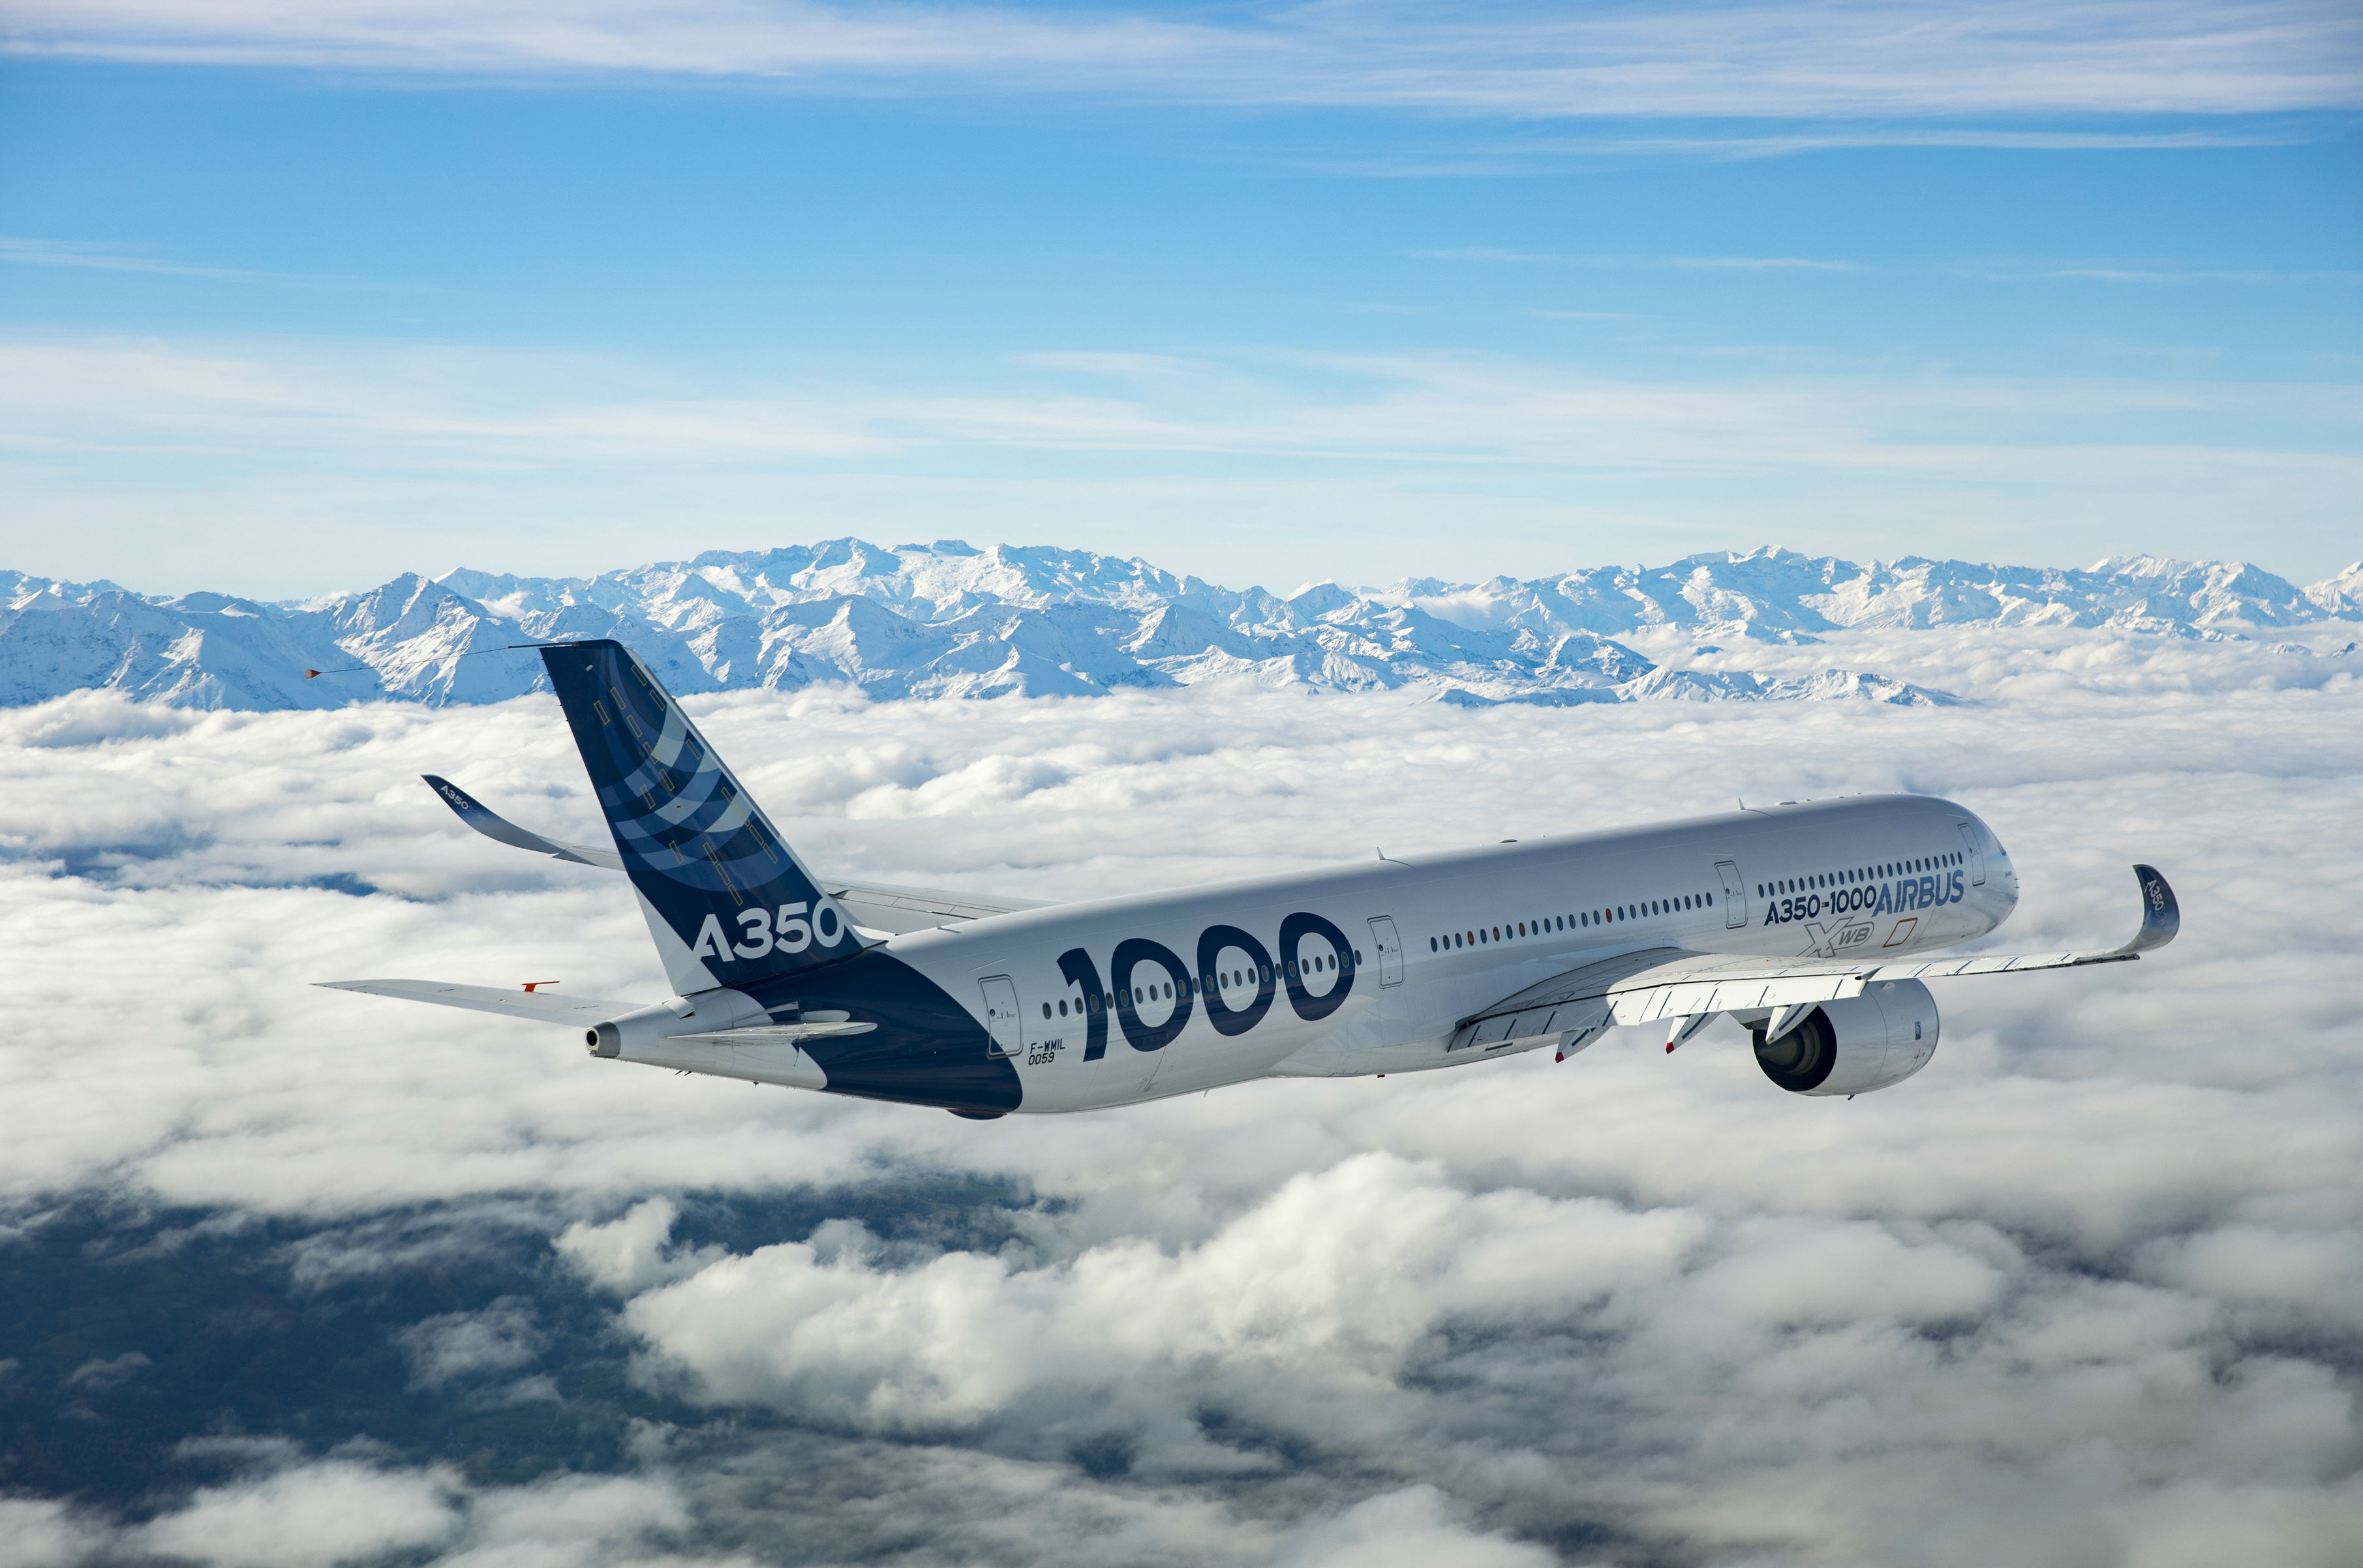 Airbus A350-1000 in flight